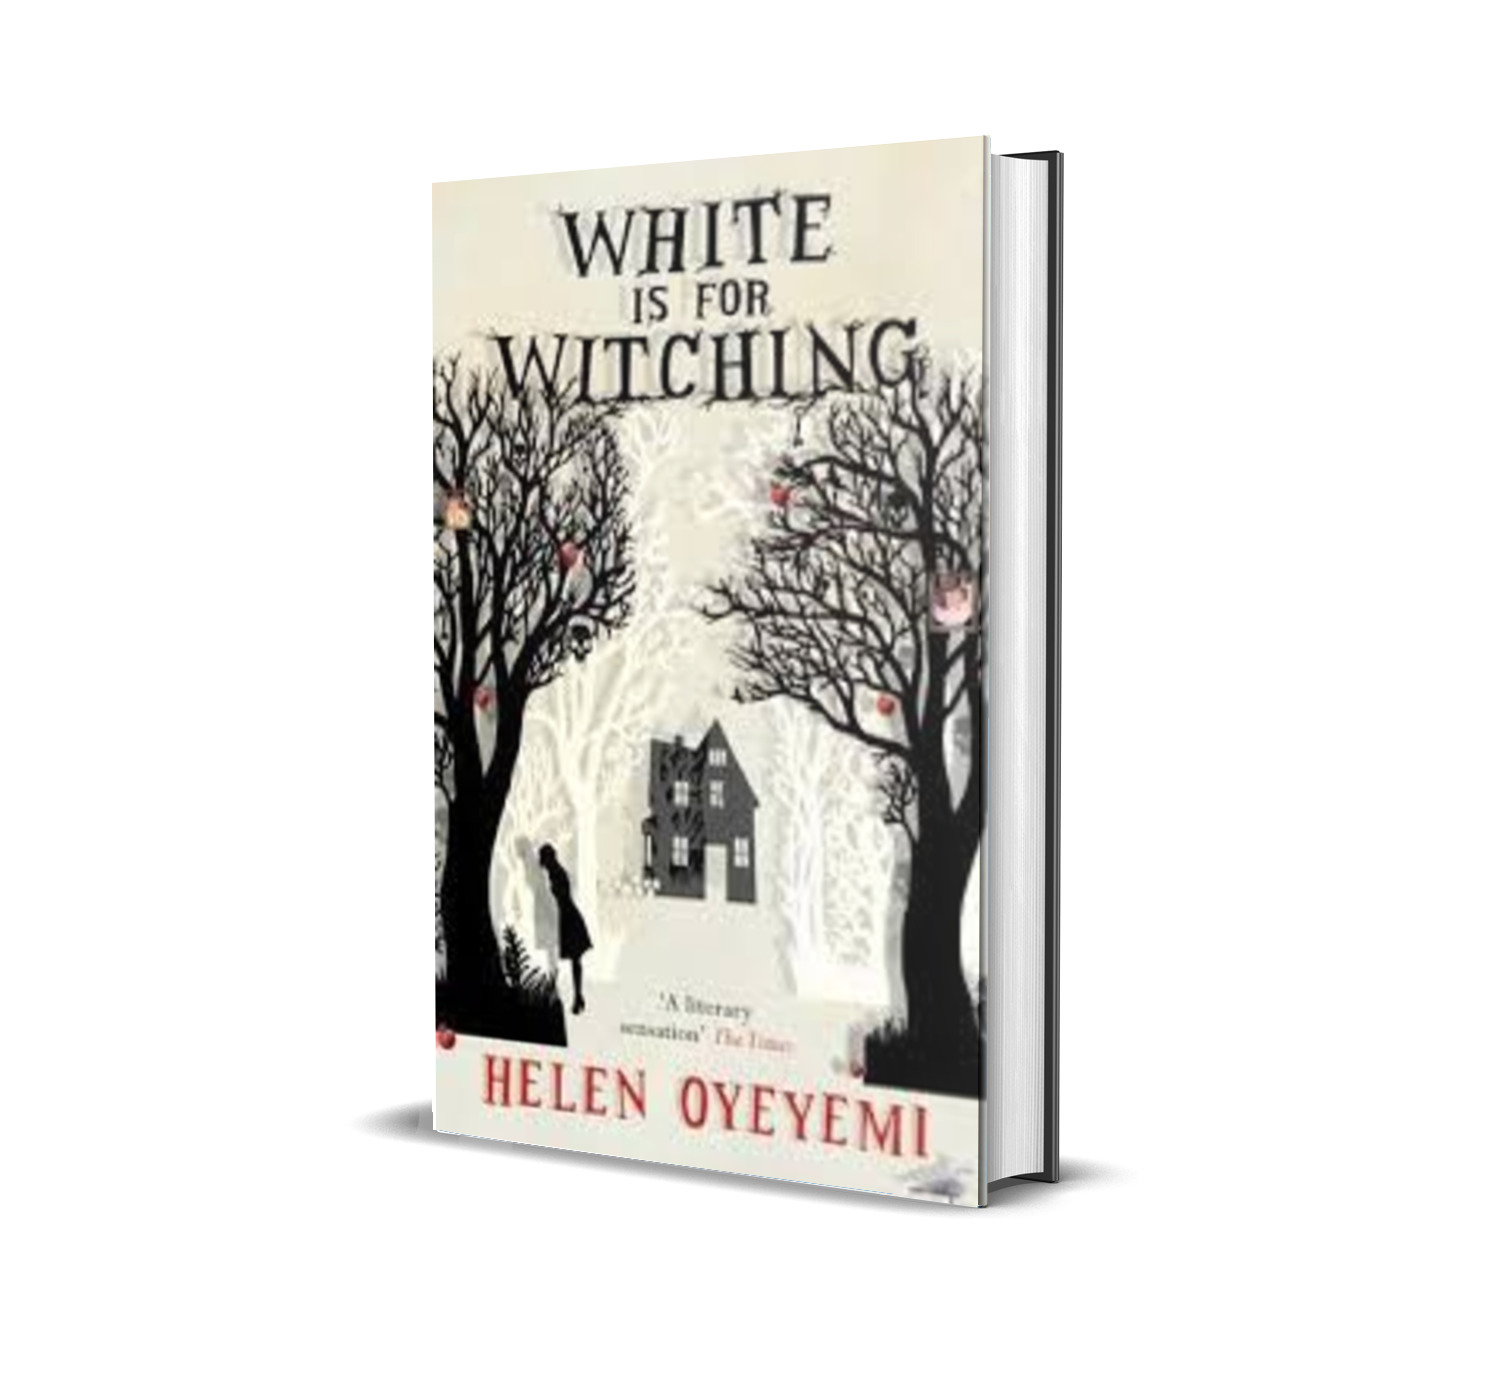 White is for witching- helen oyeyemi